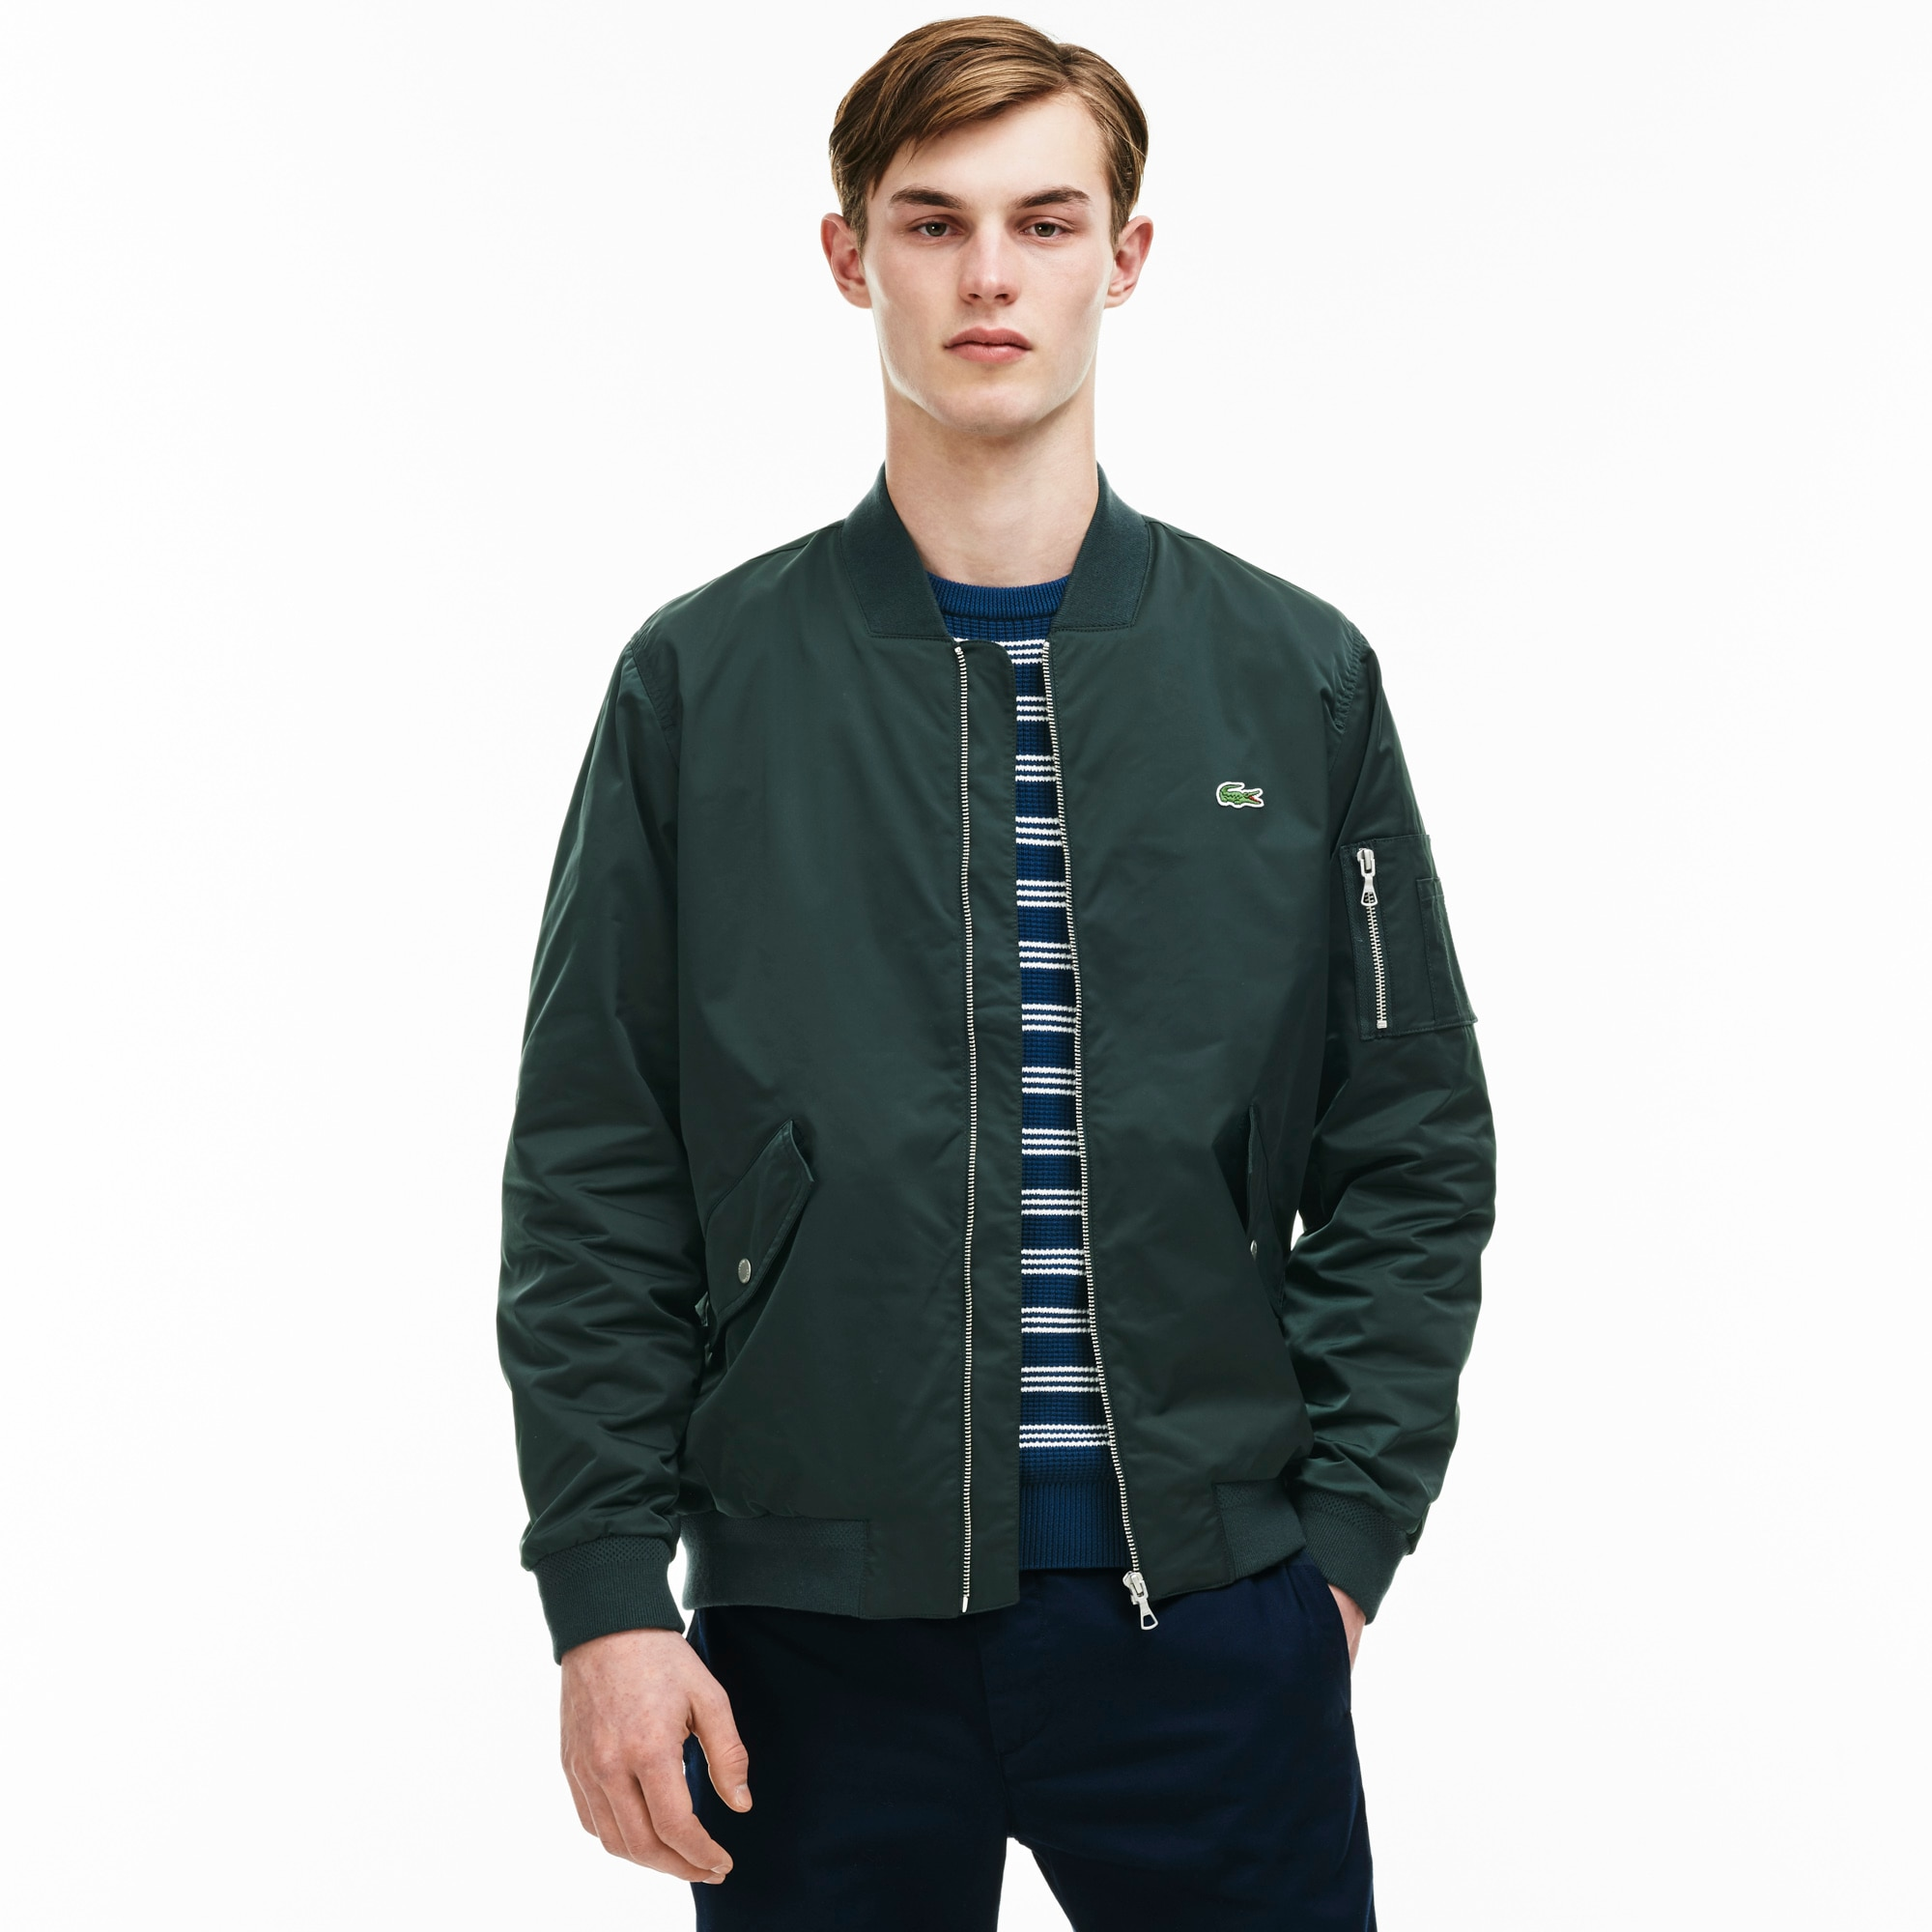 men 39 s jackets and coats on sale outerwear lacoste. Black Bedroom Furniture Sets. Home Design Ideas